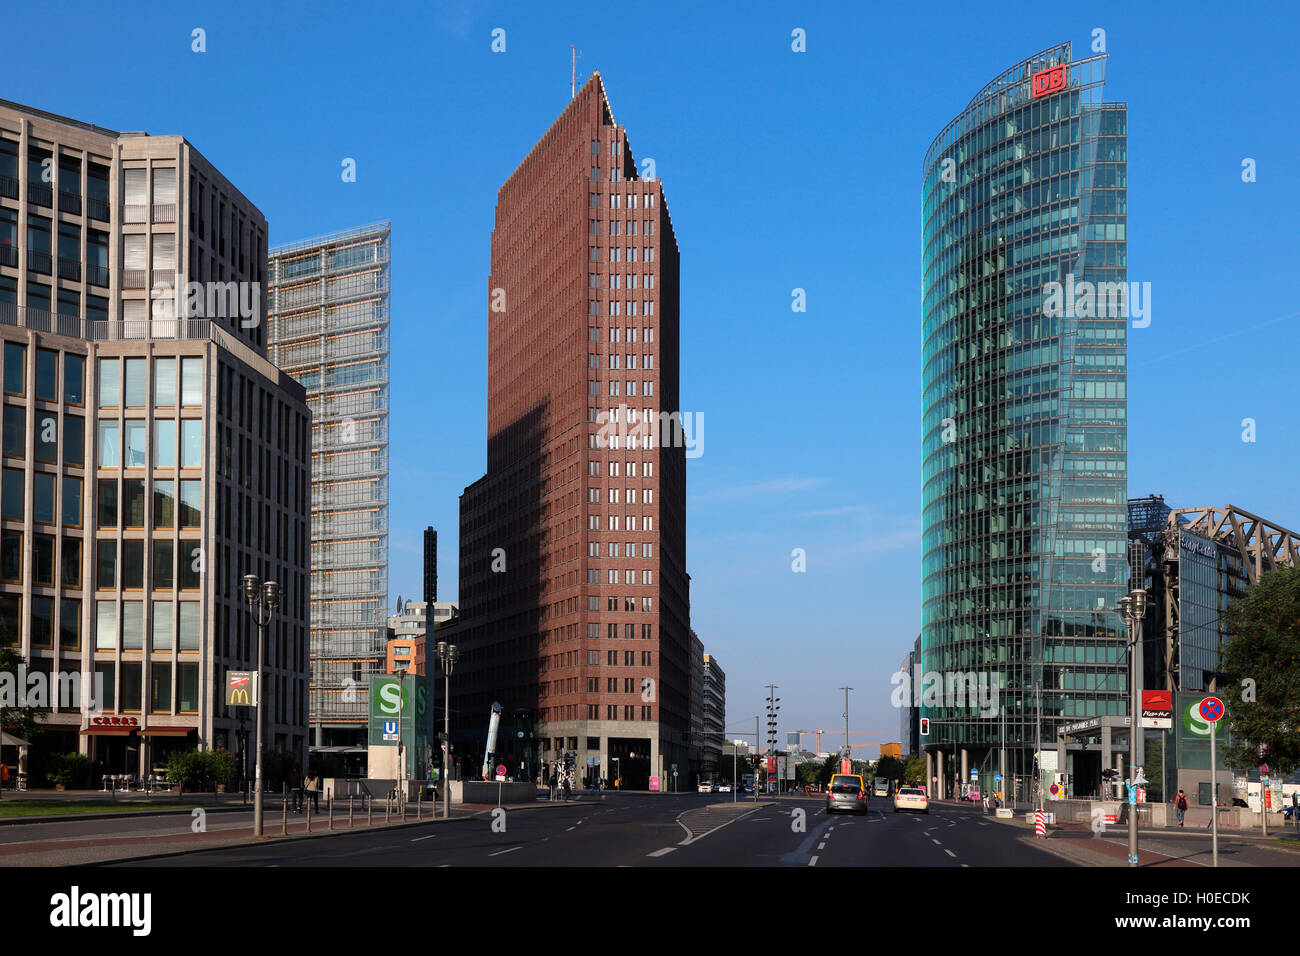 Leipziger Str High Resolution Stock Photography and Images